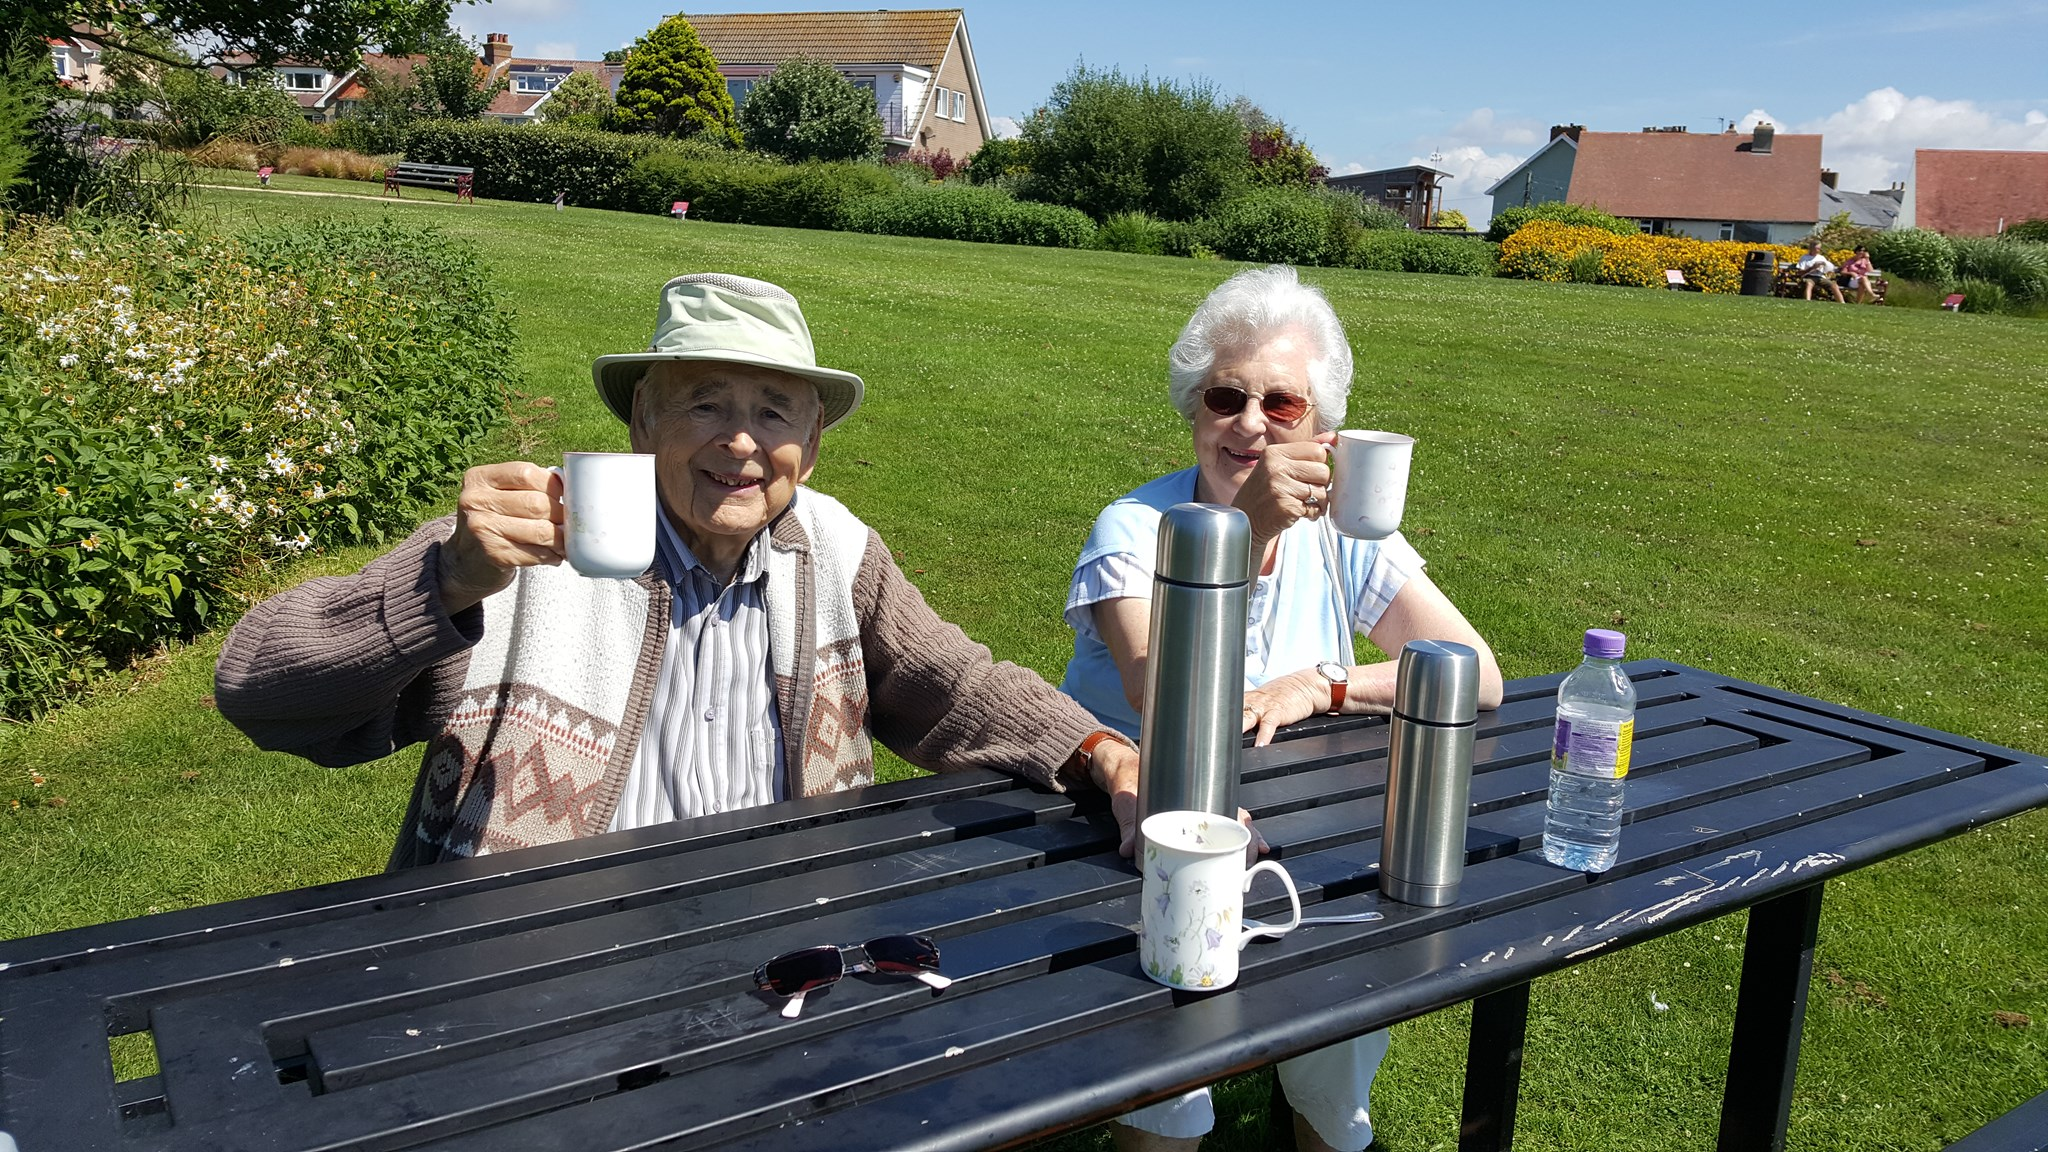 Dad and Mum in the park enjoying a cup of coffee!